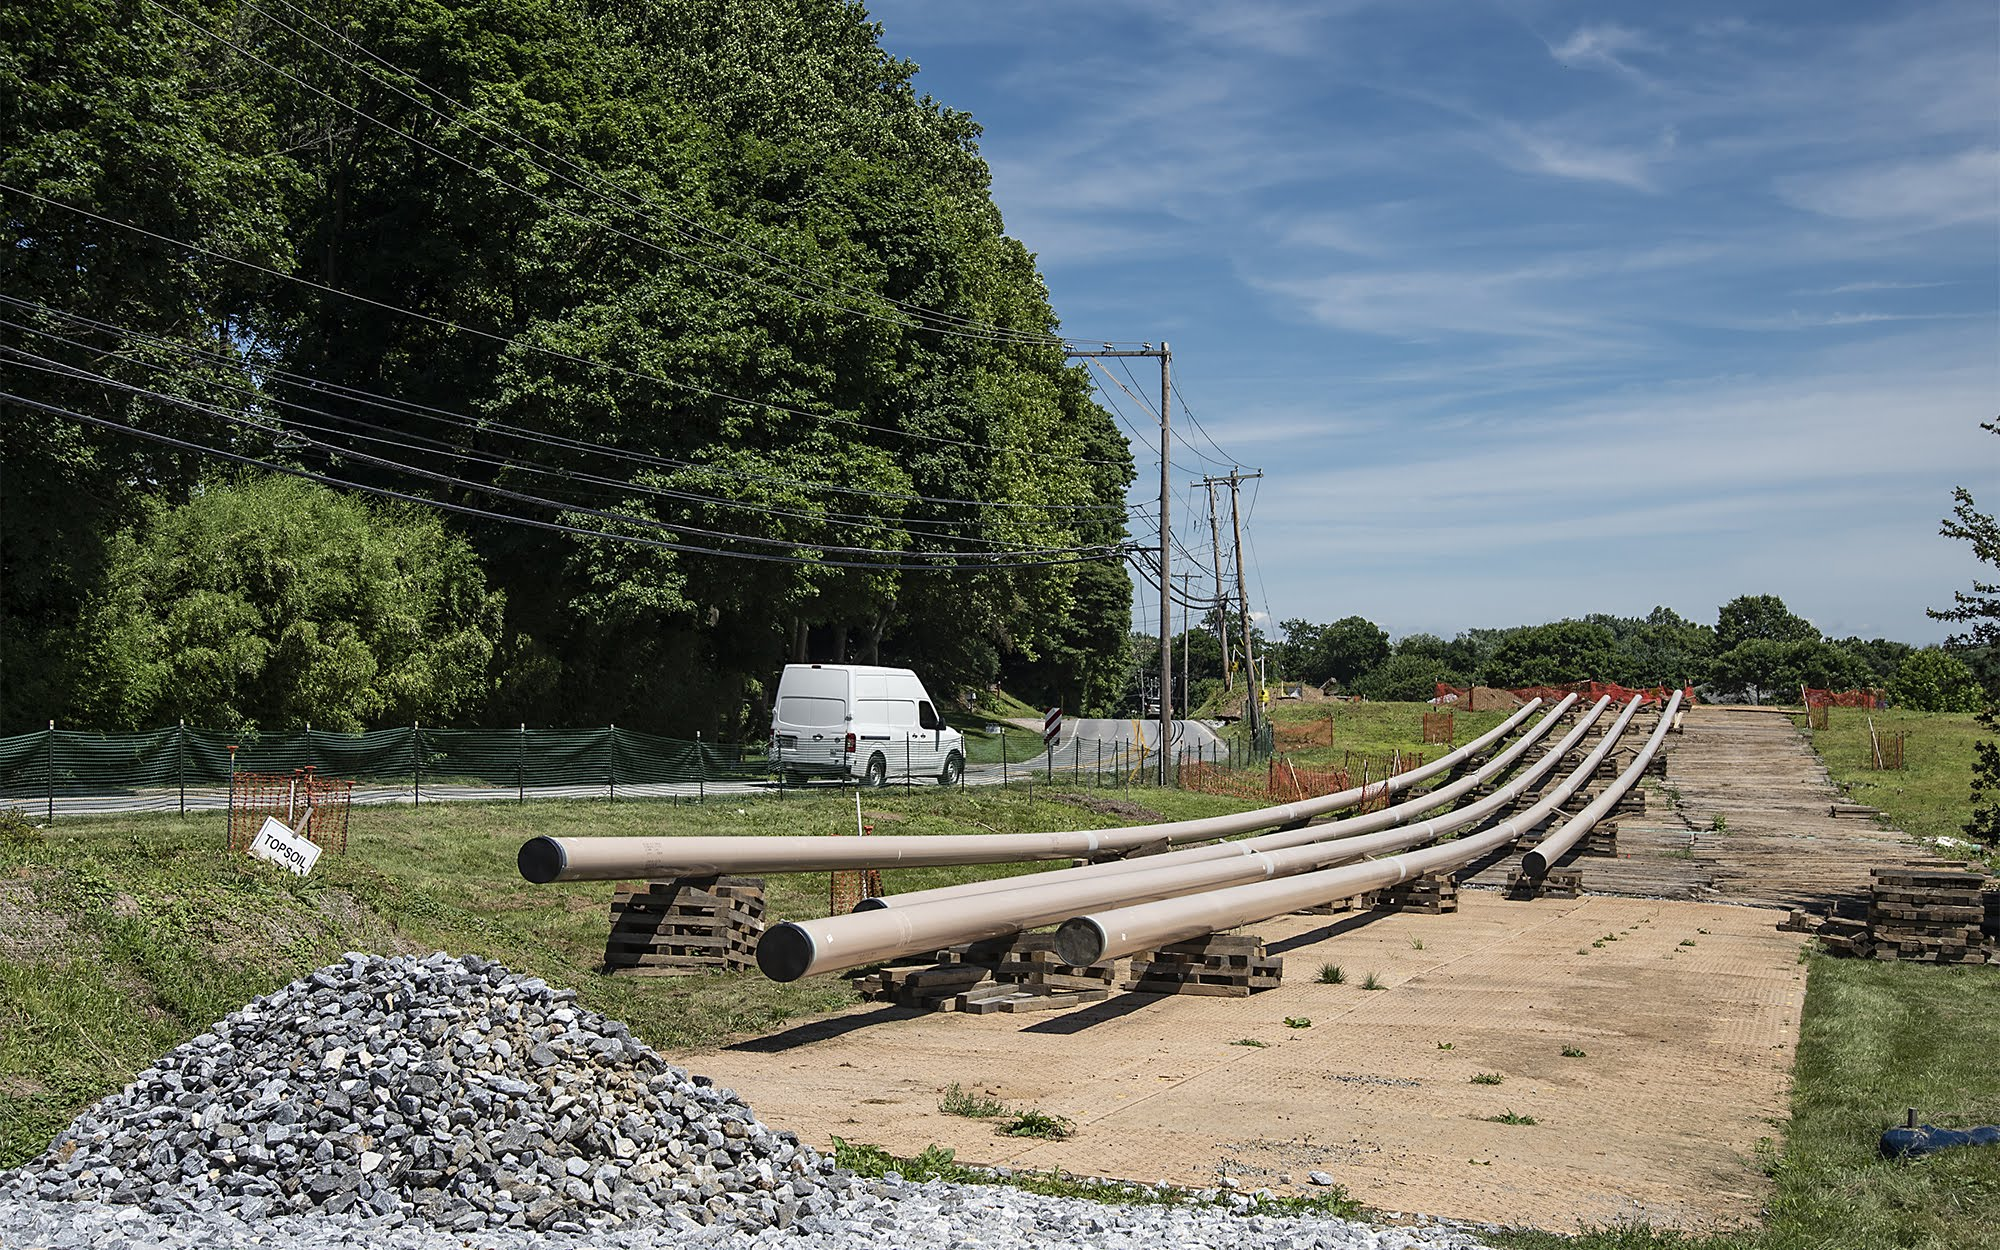 Pipes are laying ready in Chester County, Pa. to be put in the ground as part of the Mariner East 2 pipeline. (Photo by Teake Zuidema/PublicSource)